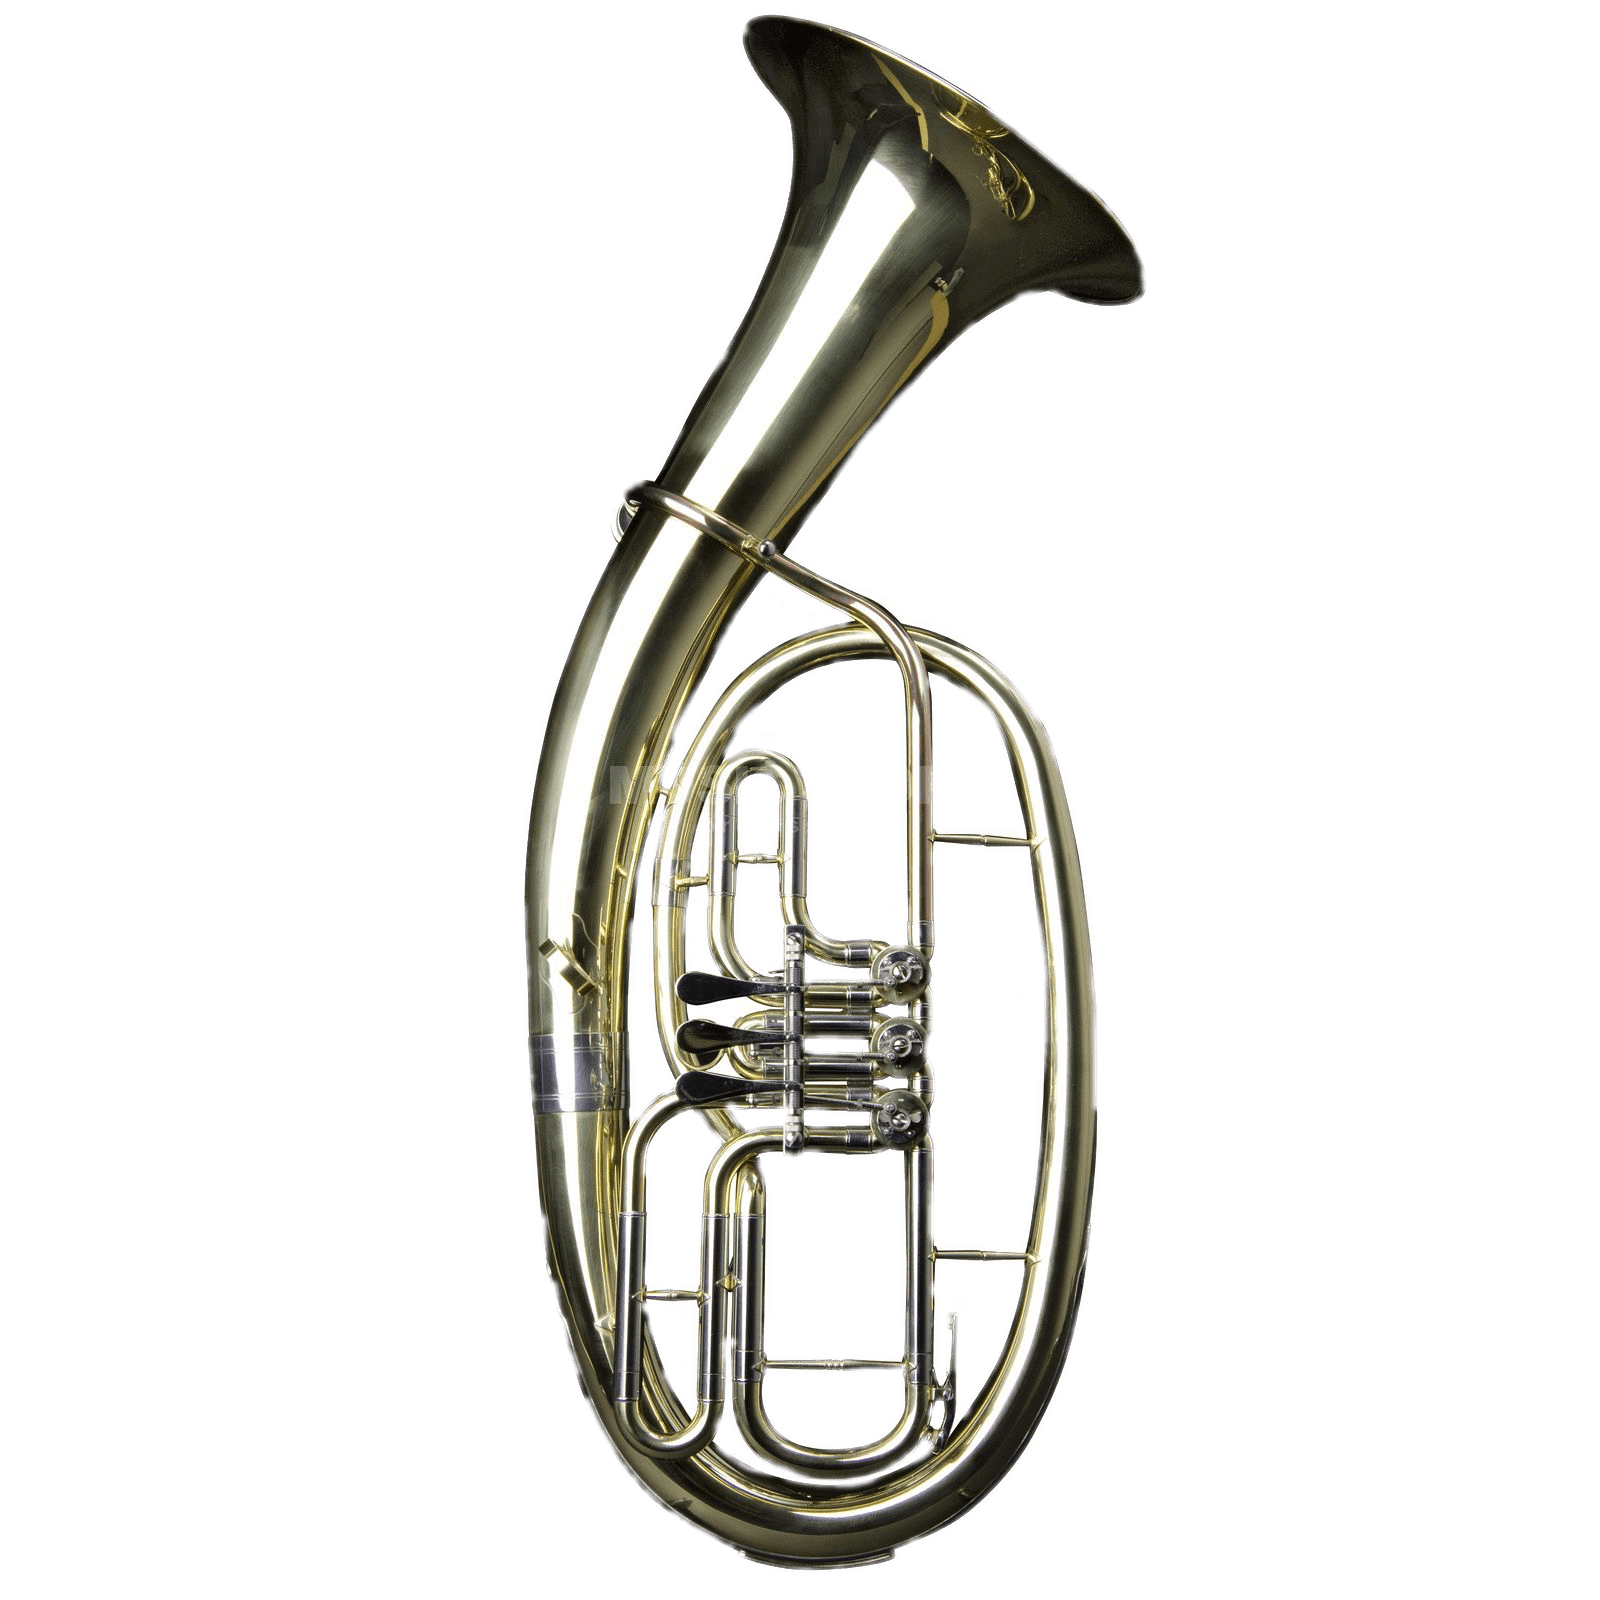 Brass tenor horn transparent. Instruments clipart tuba